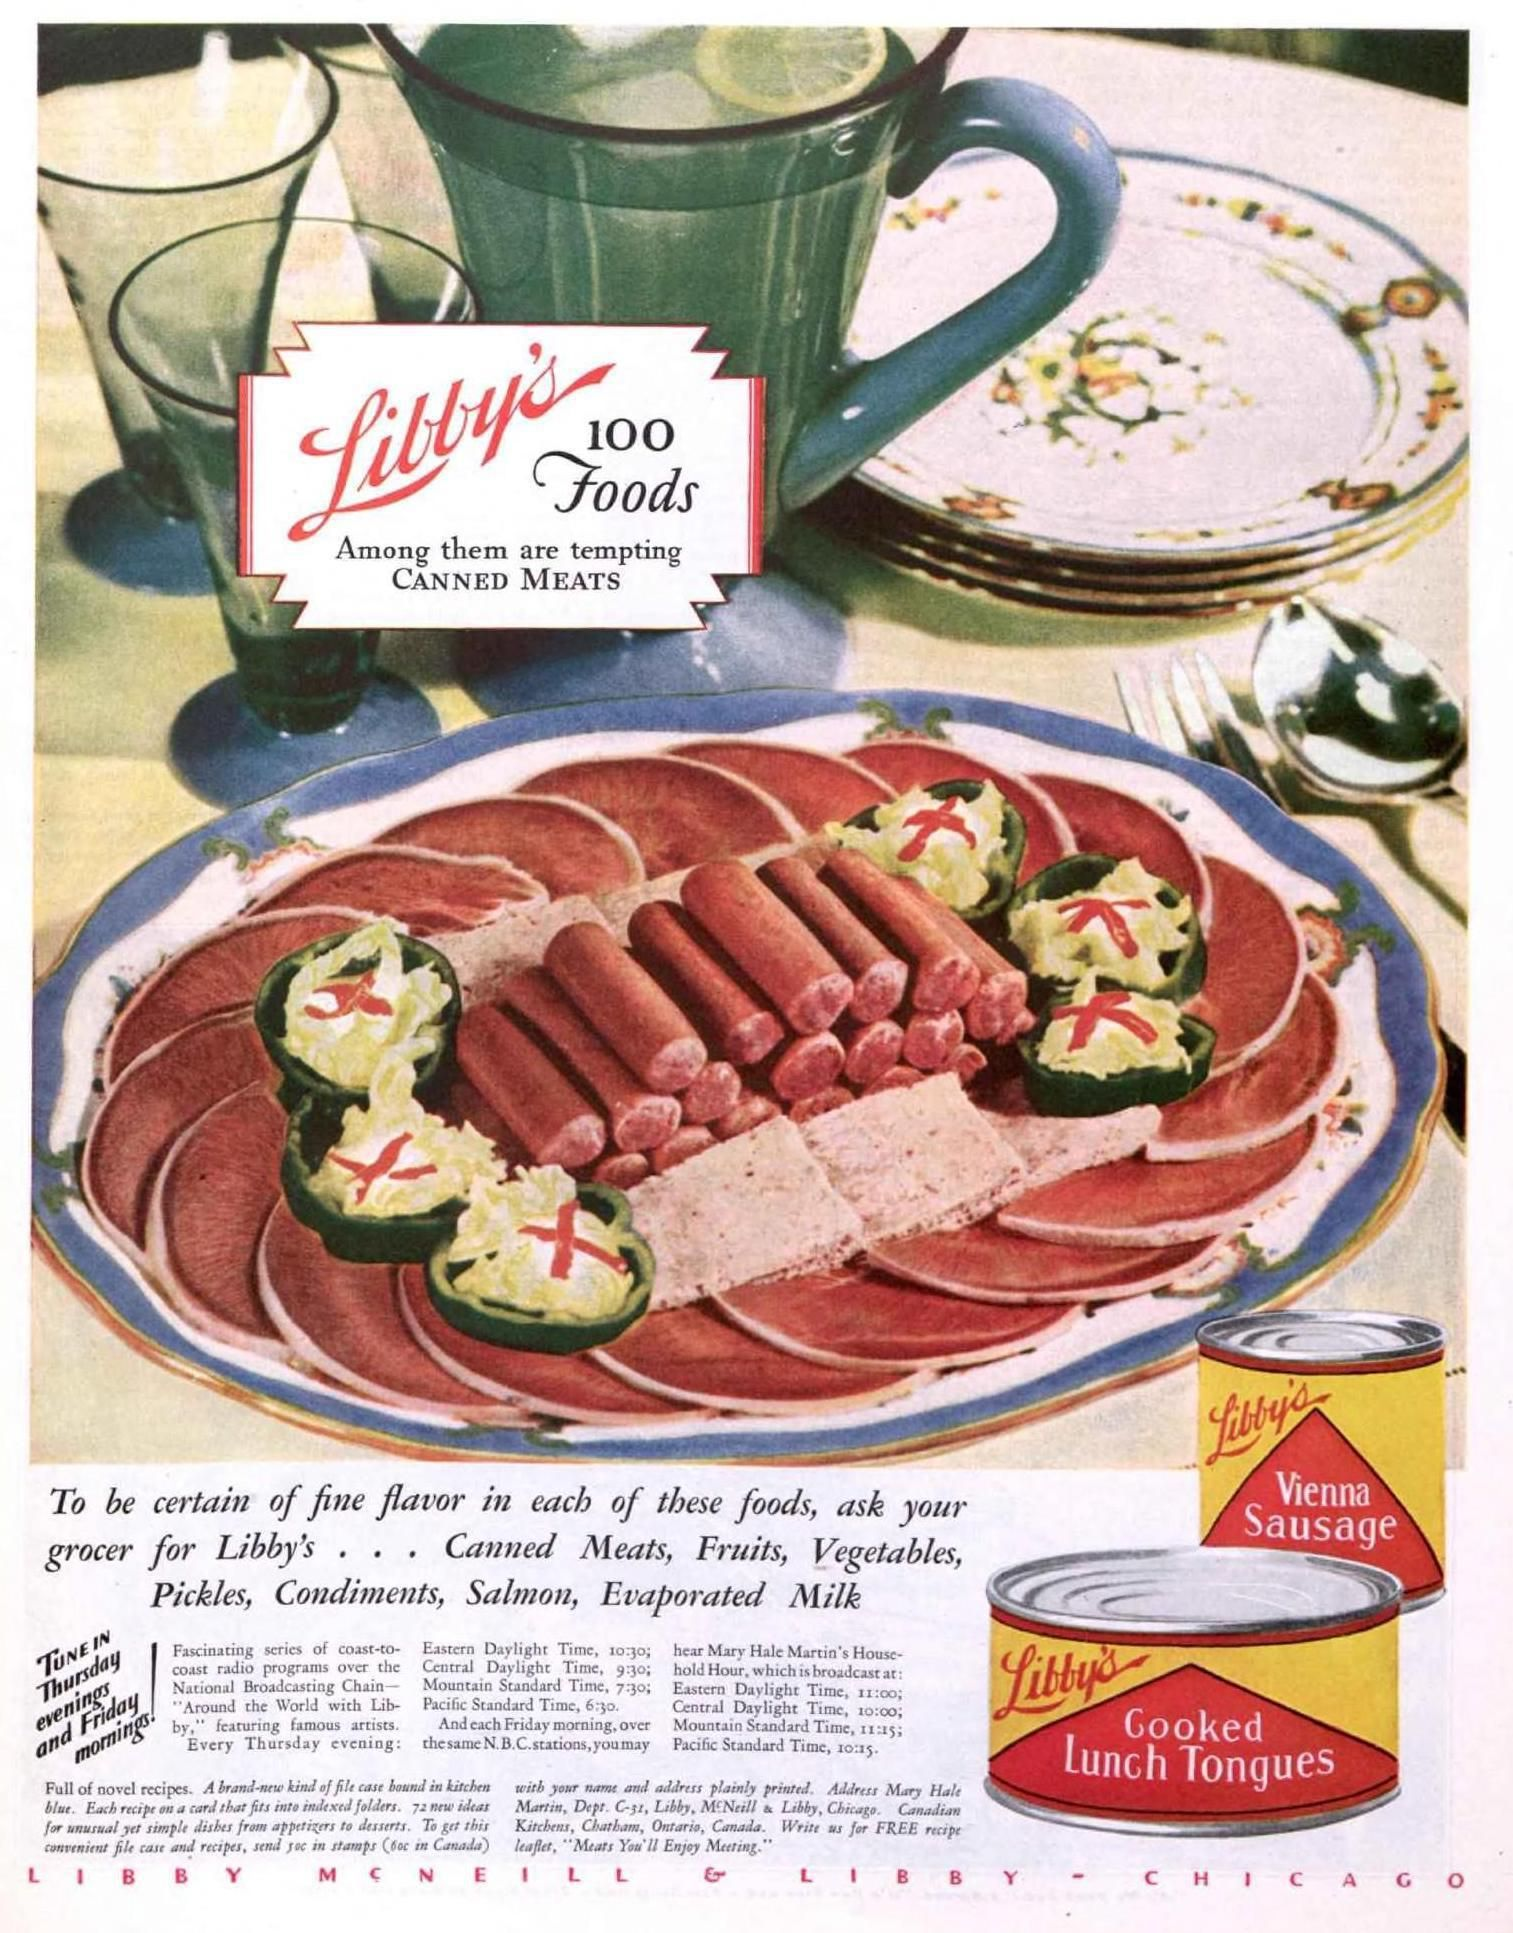 Pin by Scotty Harris on Food Oddments in 2020 Canned